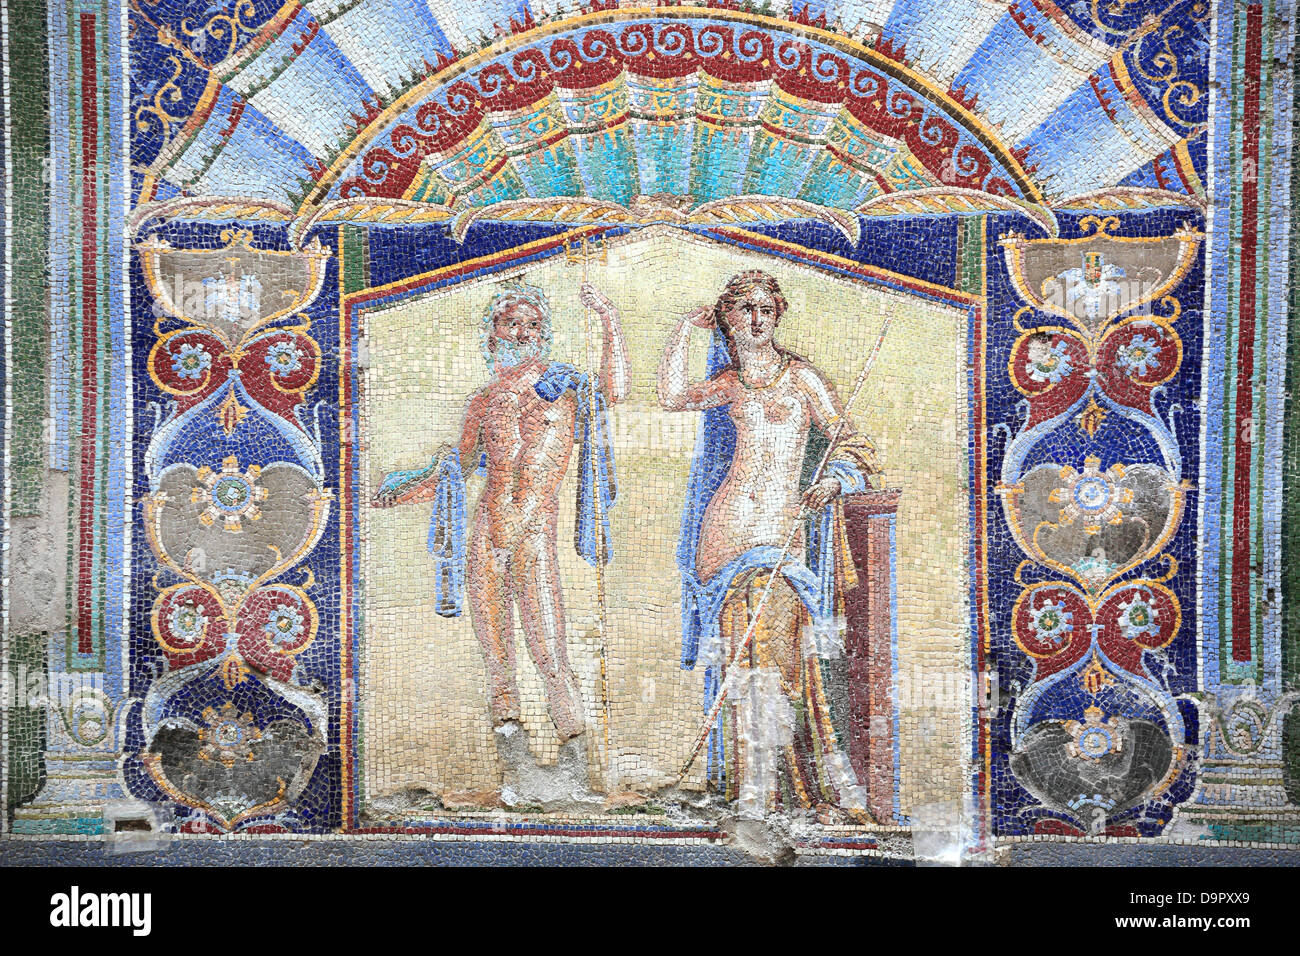 Neptune and Amphitrite, wall mosaic in the house No. 22 in the ruins of Herculaneum, Campania, Italy - Stock Image